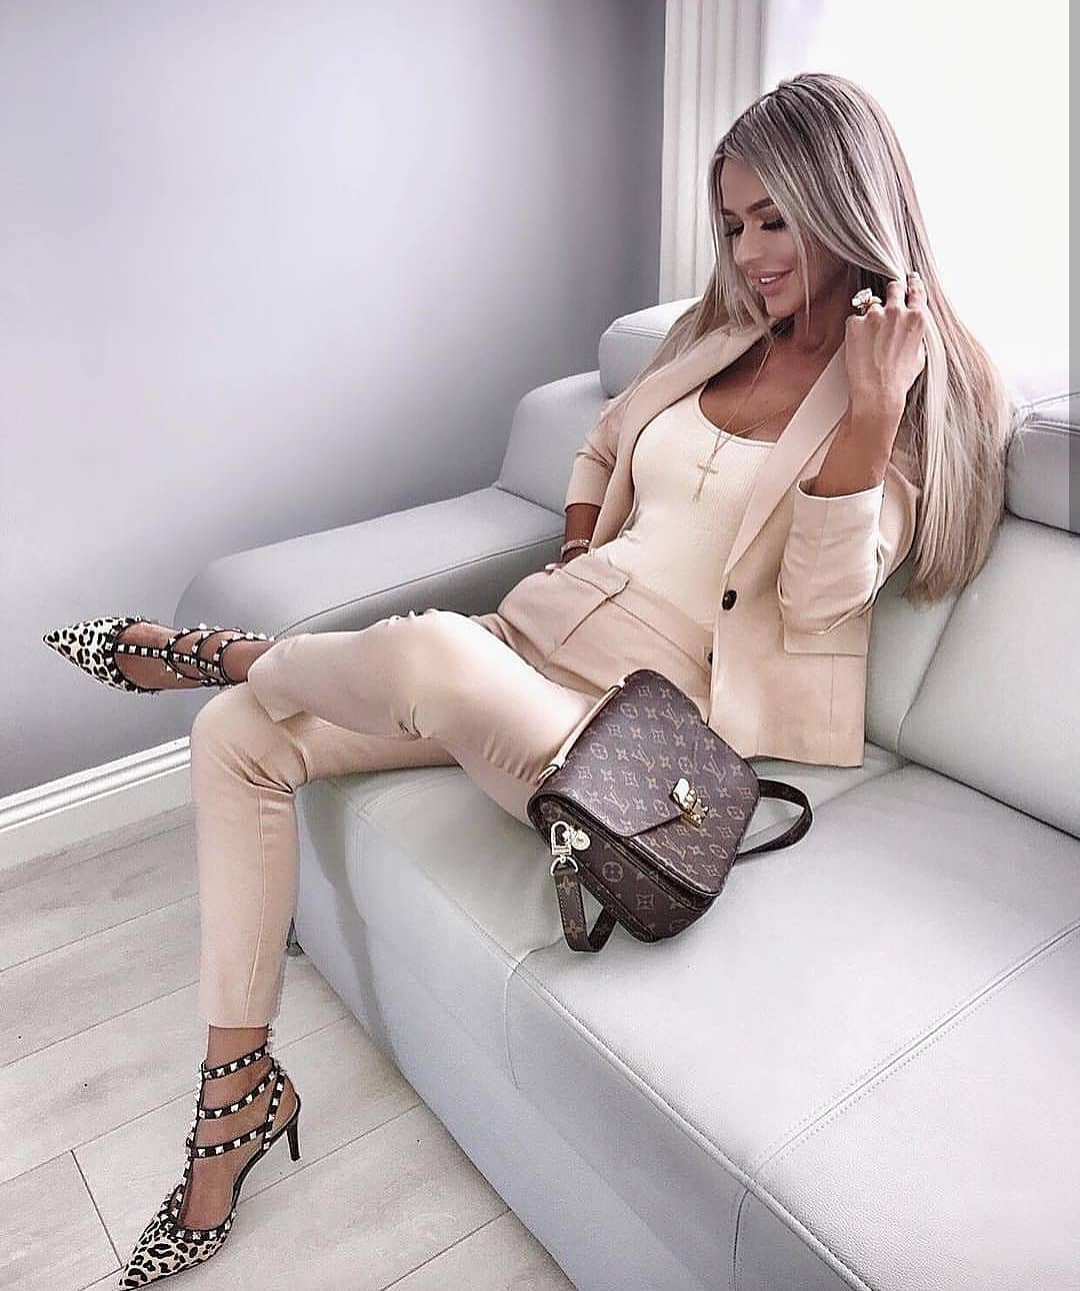 Pastel Pantsuit In Slim Fit For Young Women To Wear This Summer 2020